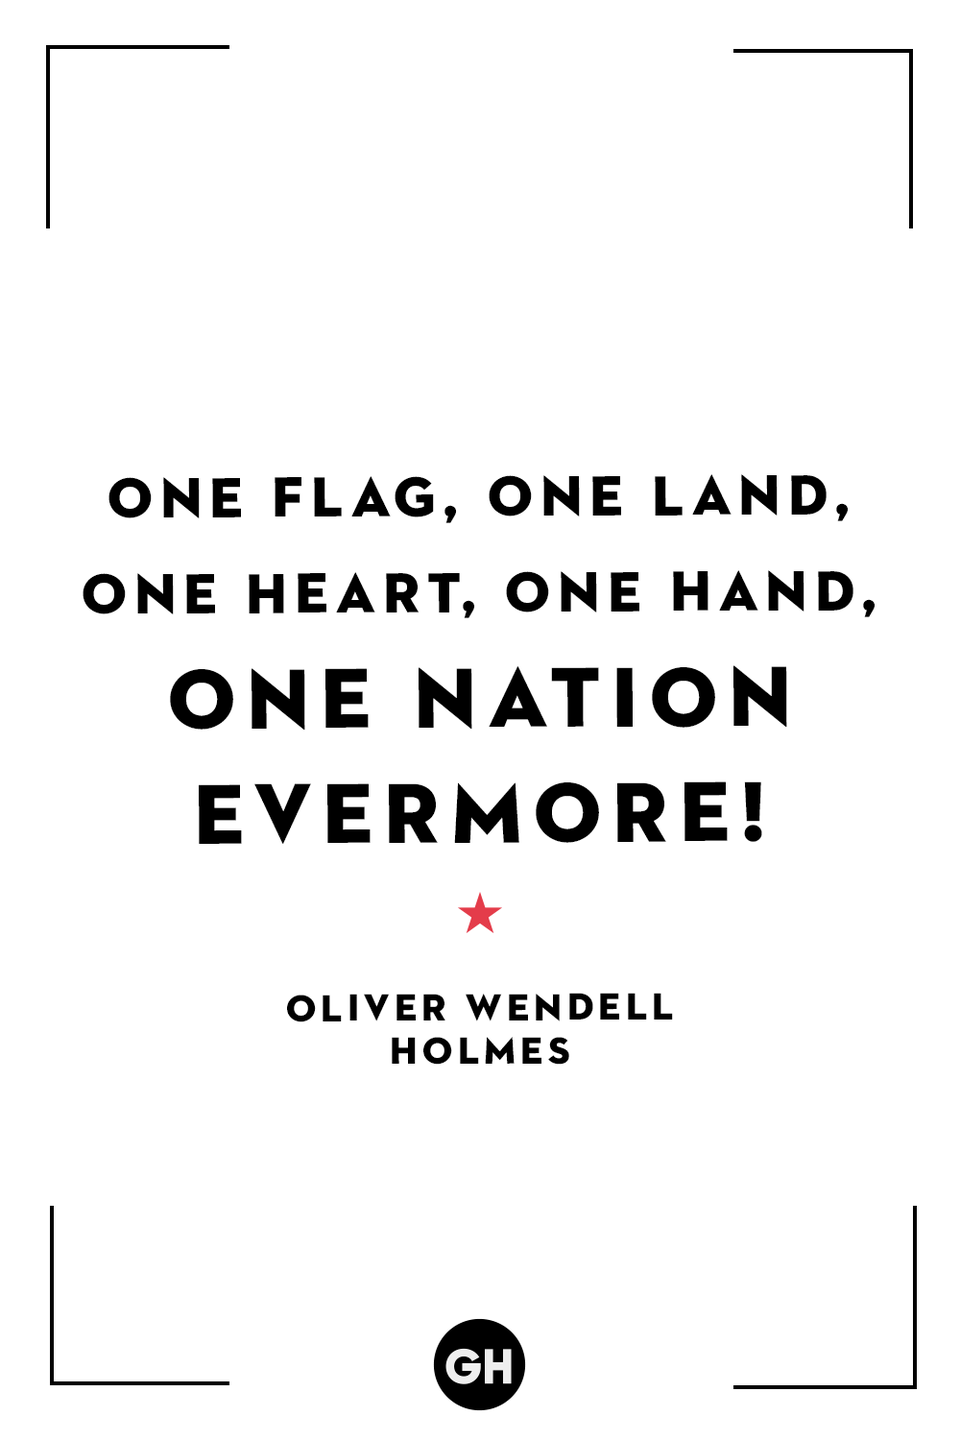 <p>One flag, one land, one heart, one hand, one nation evermore!</p>